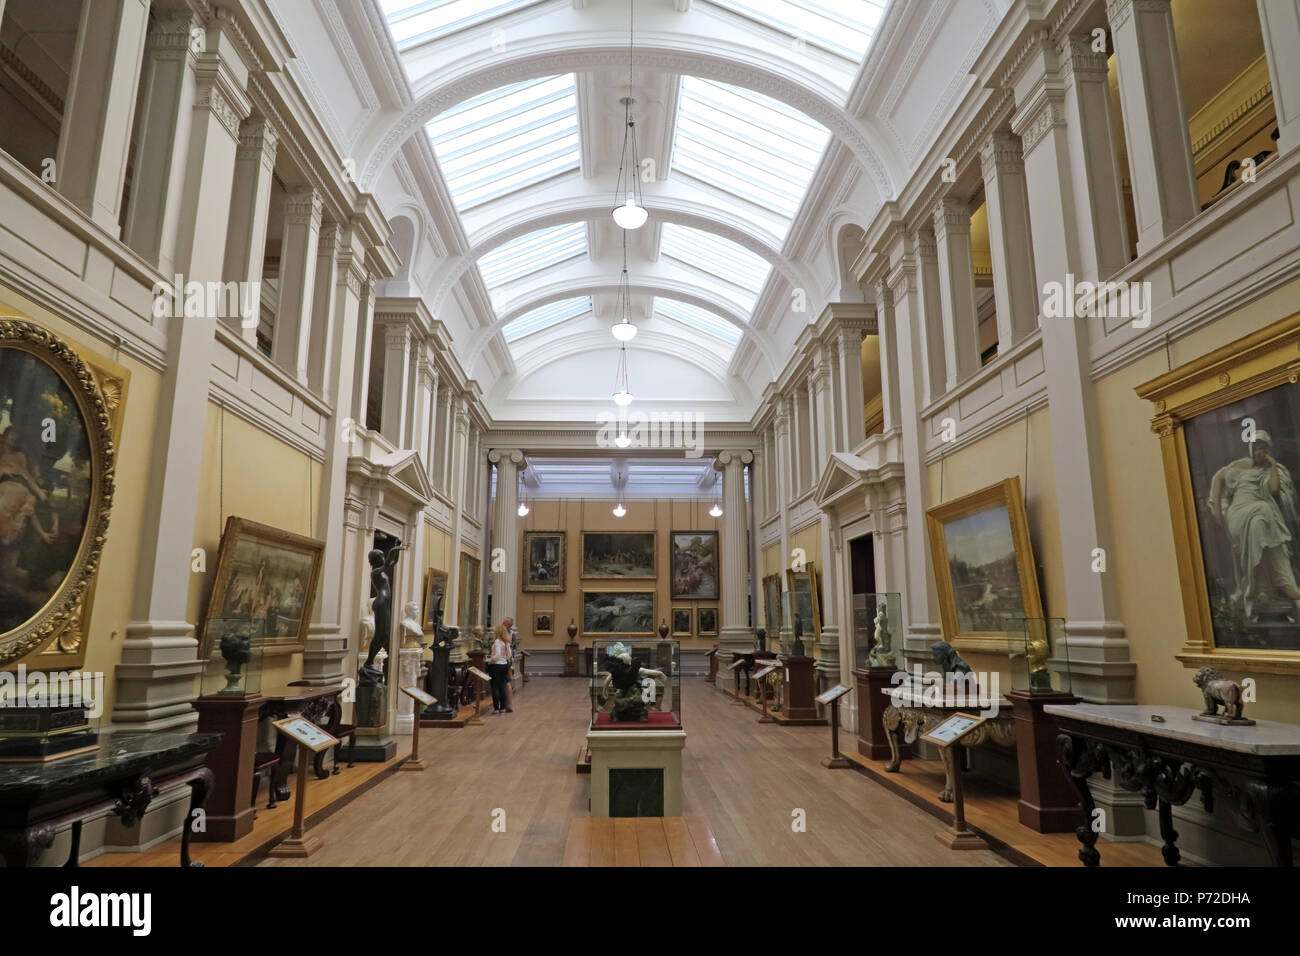 HotpixUK,GoTonySmith,Lever,Bros,Brothers,Lady Lever,Cheshire,England,UK,North West England,building,listed,architecture,classic,CH62 5EQ,CH62,room,rooms,paintings,National Museums Liverpool,National Museums,Liverpool,William and Segar Owen,Segar Owen,Beaux-Arts style,Beaux Arts style,BeauxArts,Art Collection,Art Gallery,Elizabeth Hulme,Sunlight Soap brand,Sunlight Soap,brand,factory,galleries,gallery